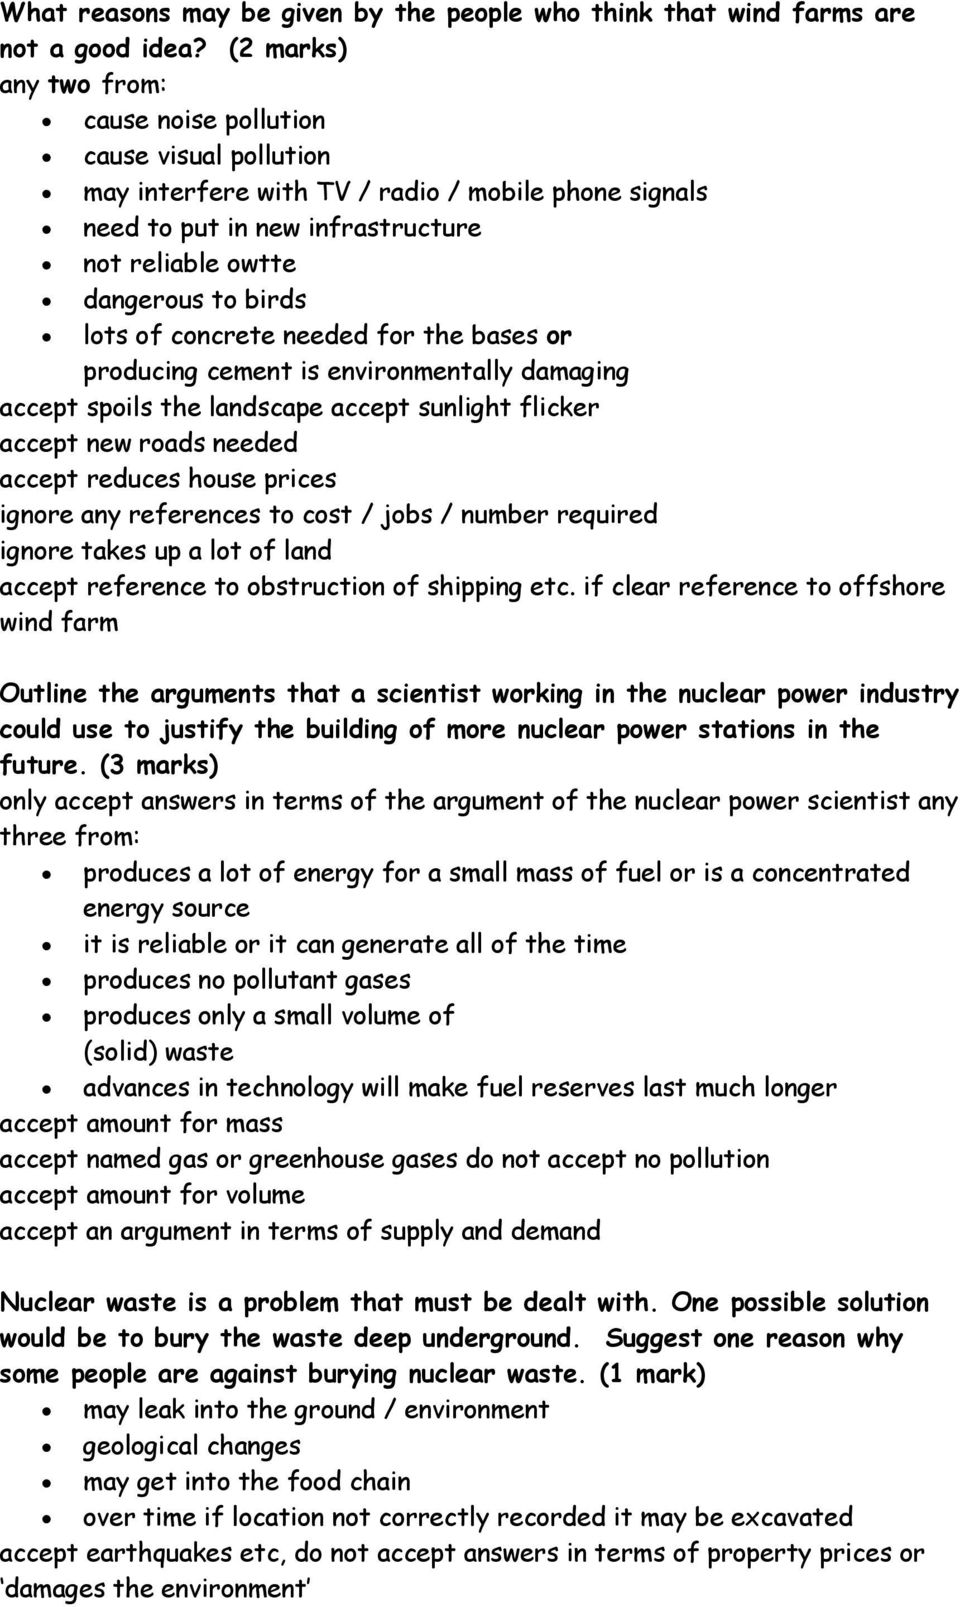 A Model Answers Physics P1 Pdf Potato Battery Diagram Images Frompo Of Concrete Needed F The Bases Producing Cement Is Environmentally Damaging Accept Spoils Landscape